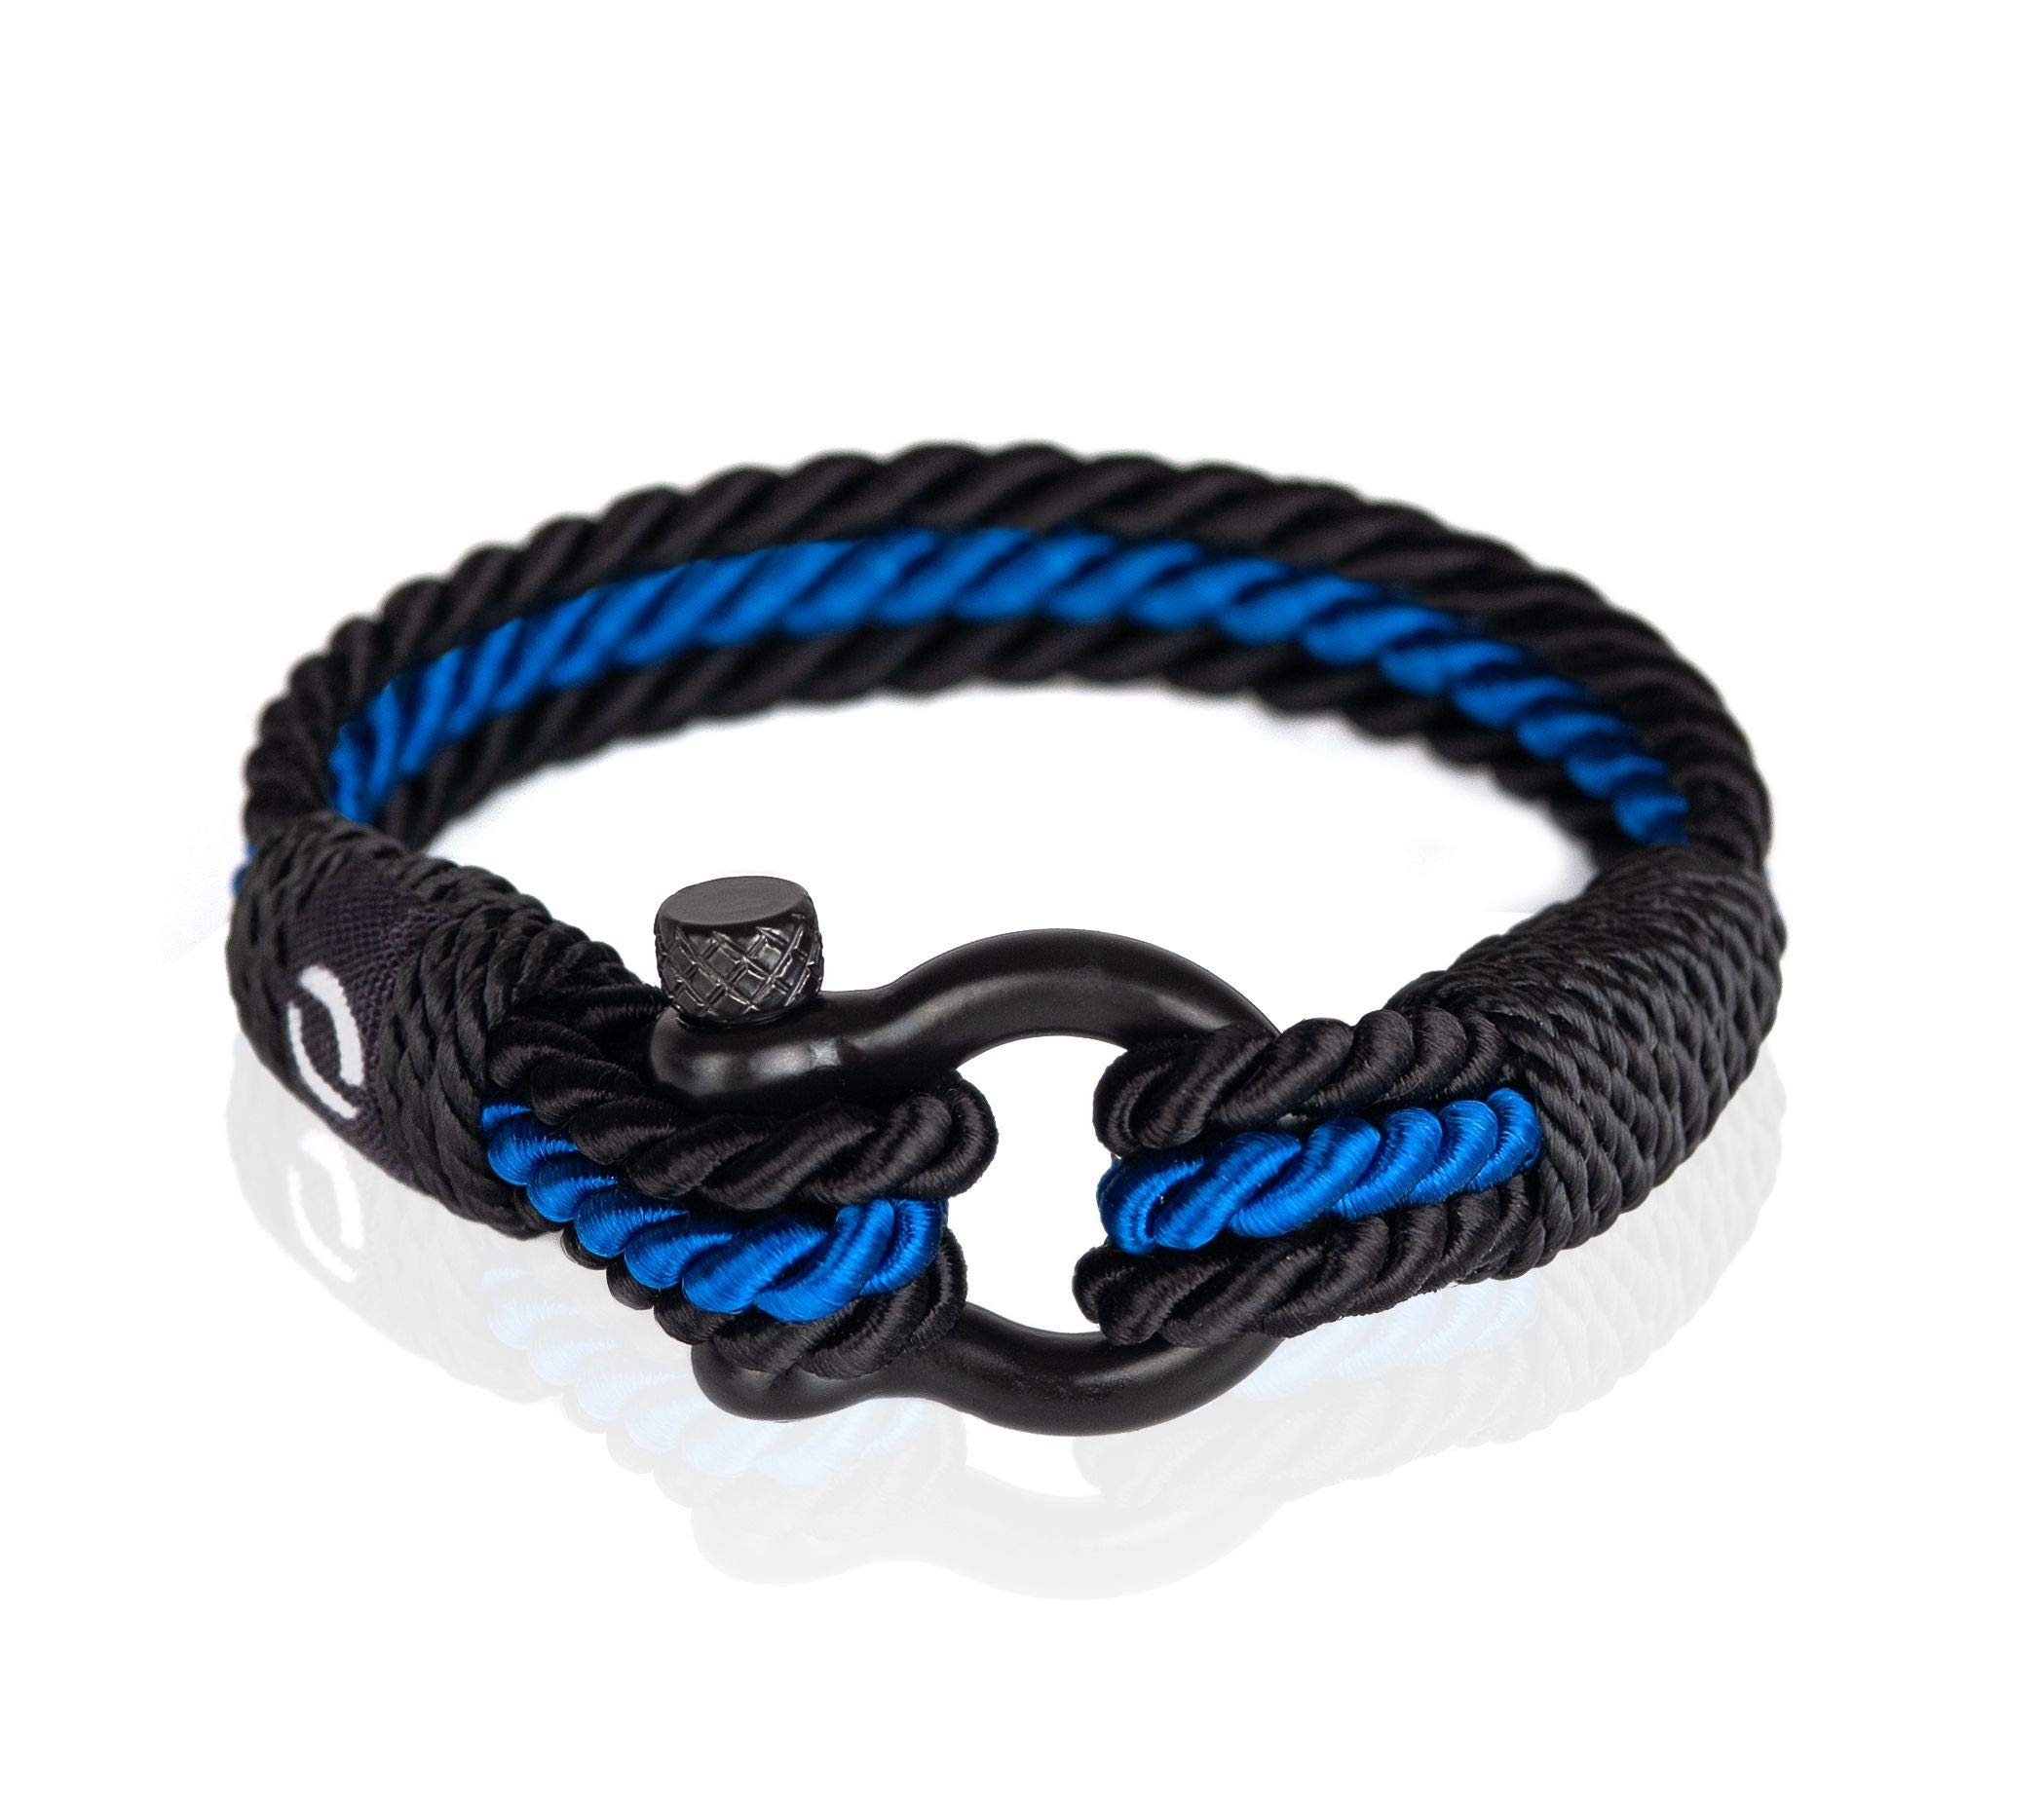 Wrap Bracelet for Women | Gift for Her | Bead Accessory | Surfer Style Accessories |Blue Color B-4-9 by Mover Bracelets